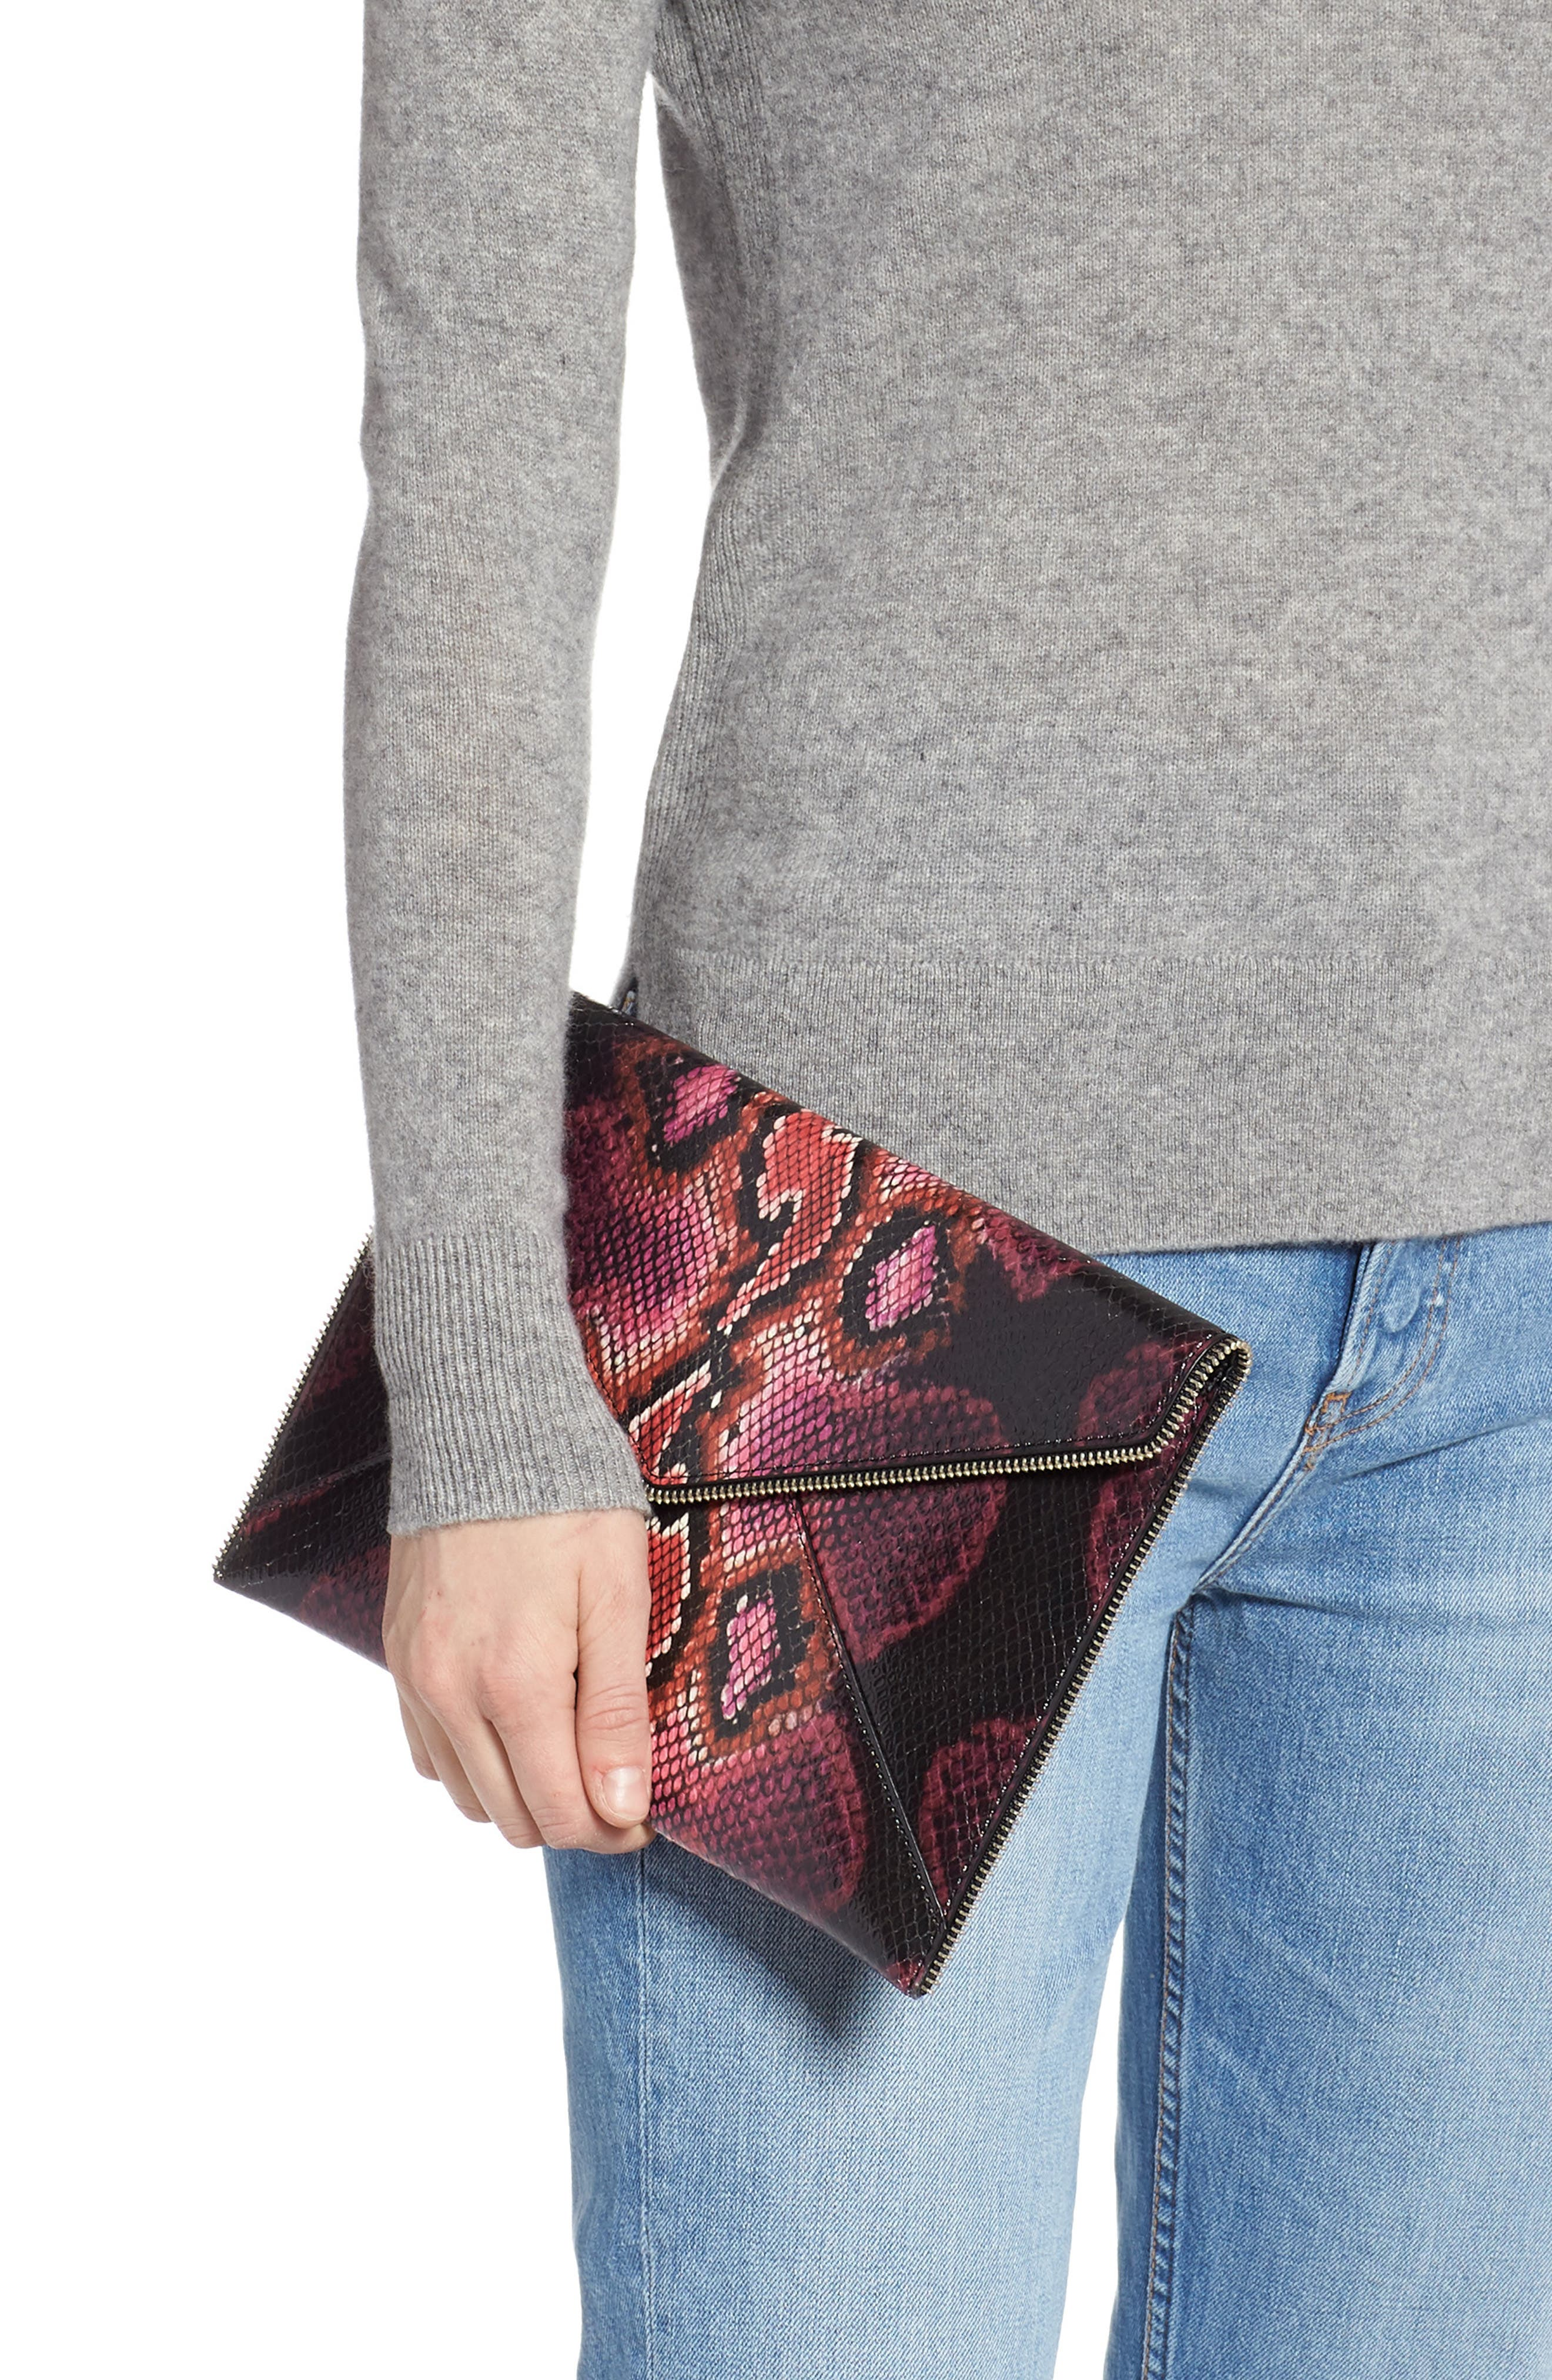 REBECCA MINKOFF,                             Leo Snake Embossed Leather Clutch,                             Alternate thumbnail 2, color,                             PINK MULTI